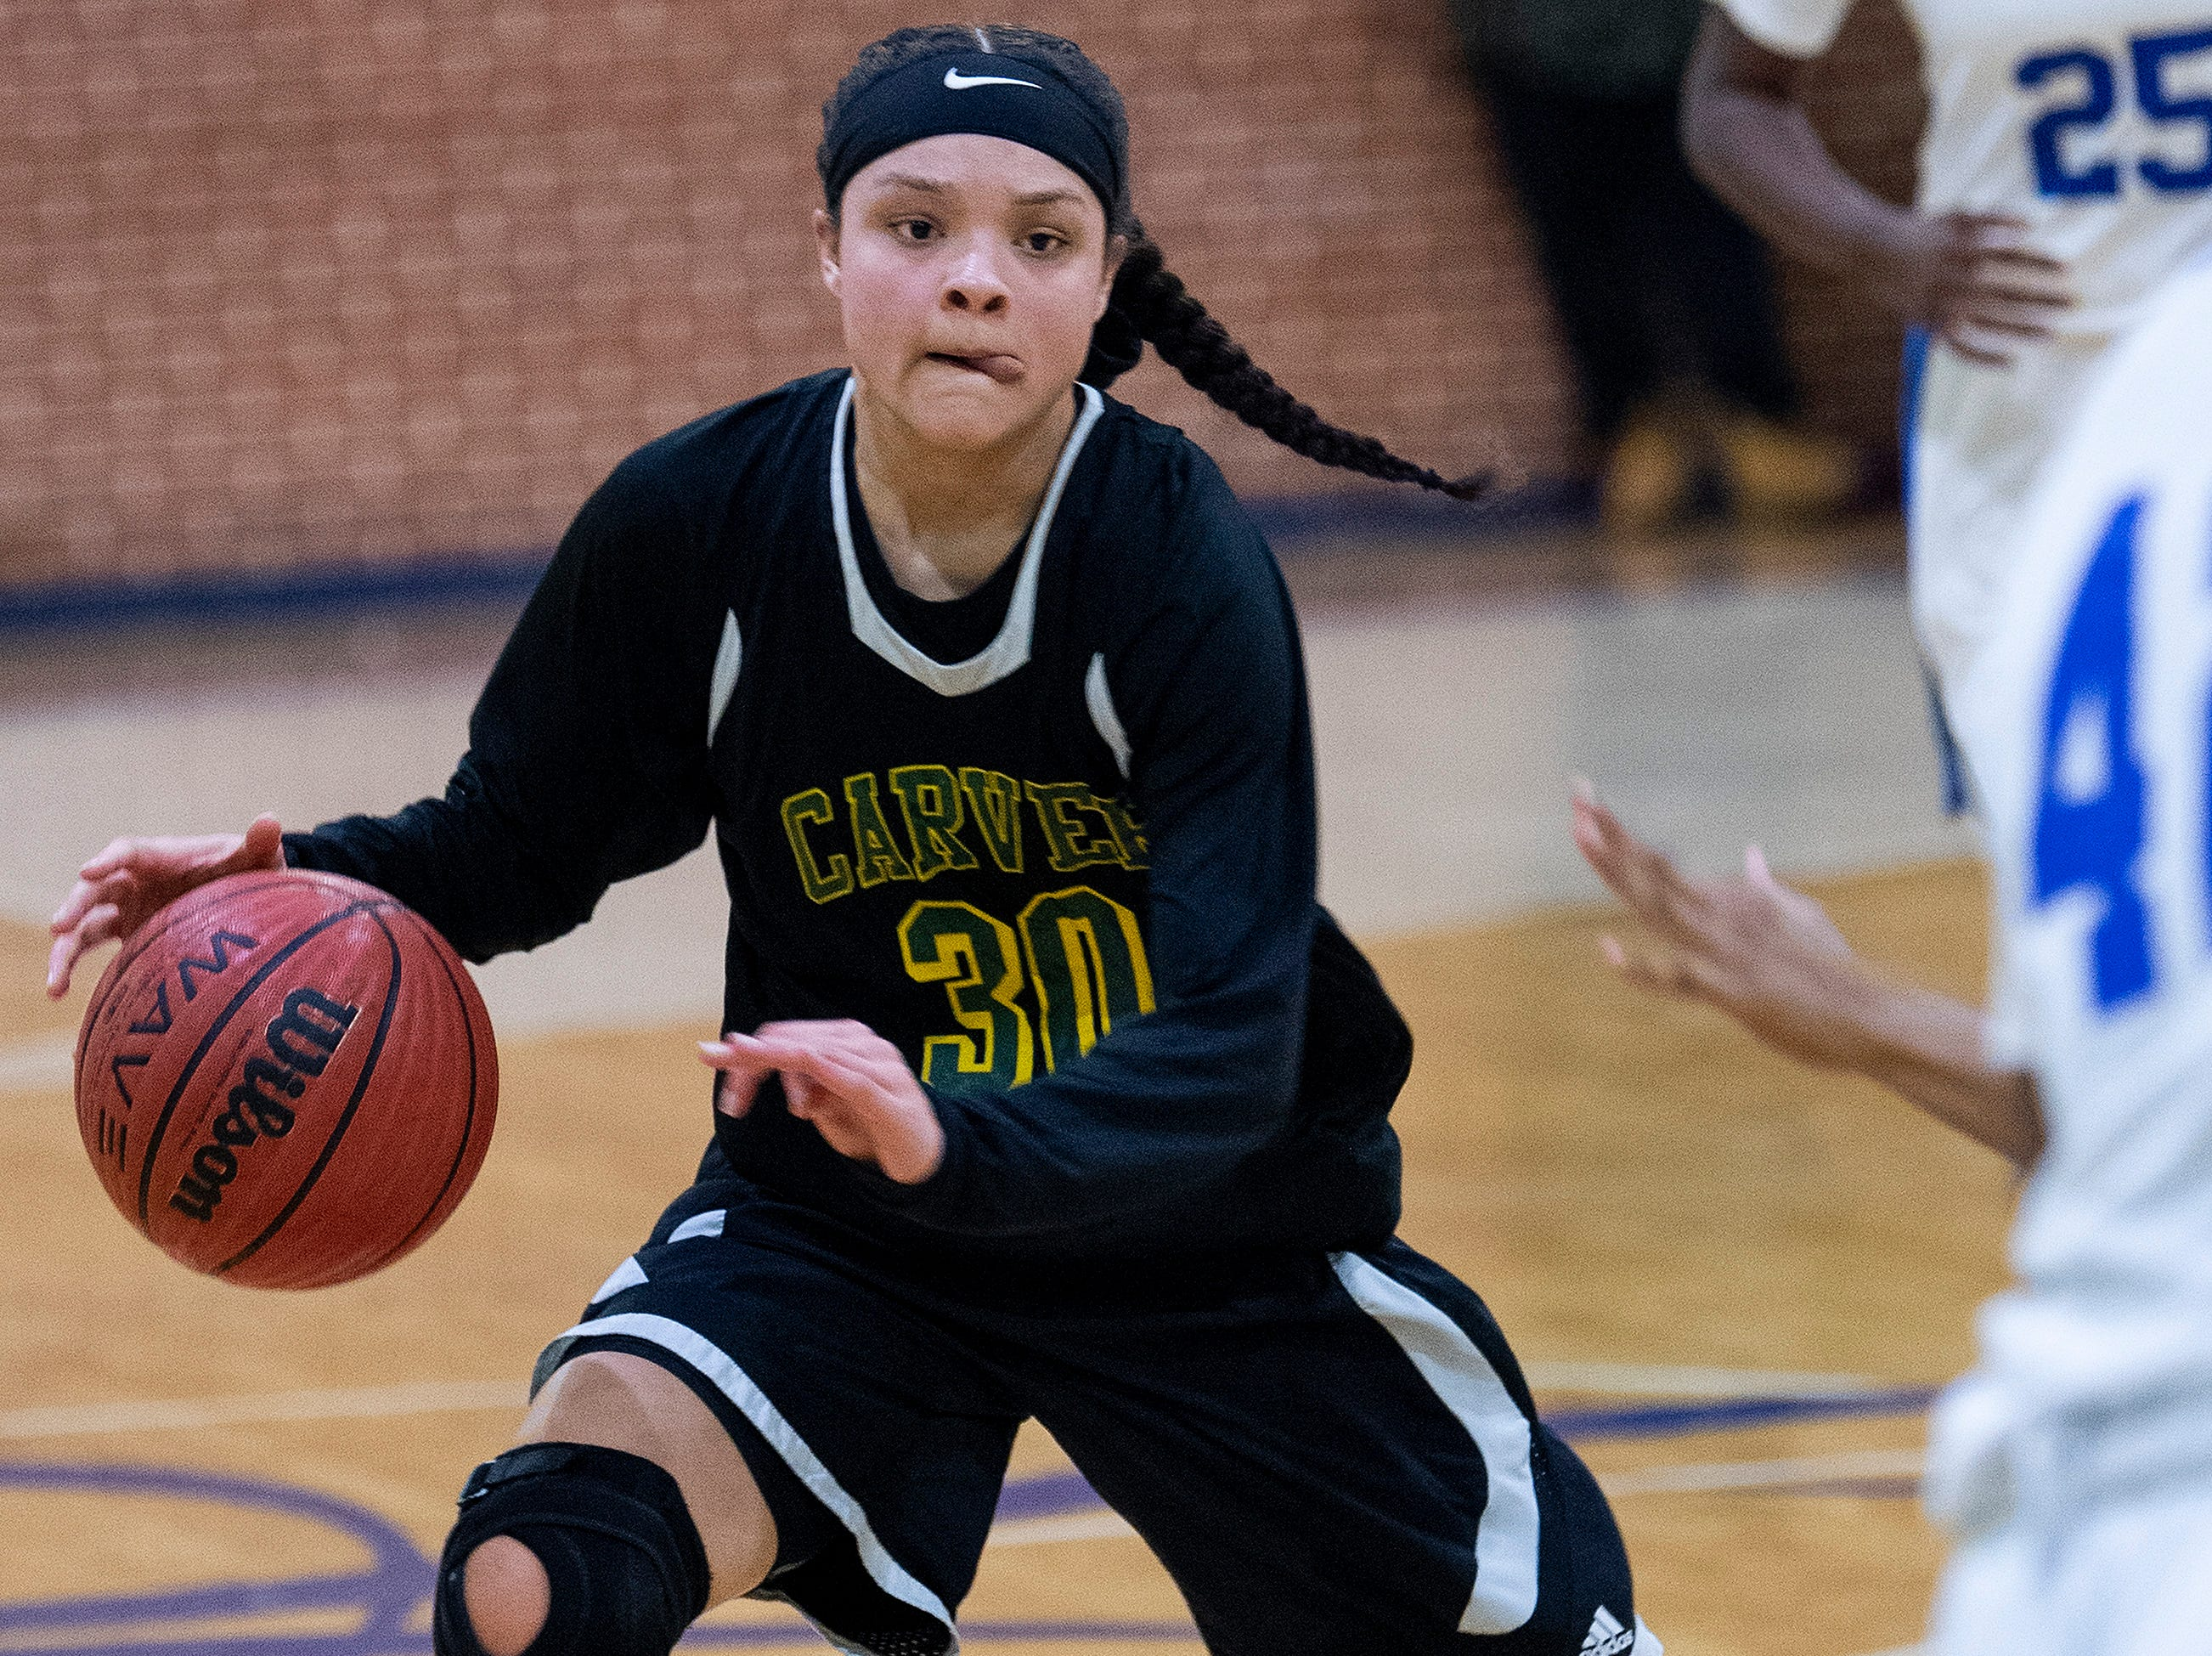 Carver's Kristin Brown (30) against Lanier at the Lanier campus in Montgomery, Ala., on Friday January 11, 2019.